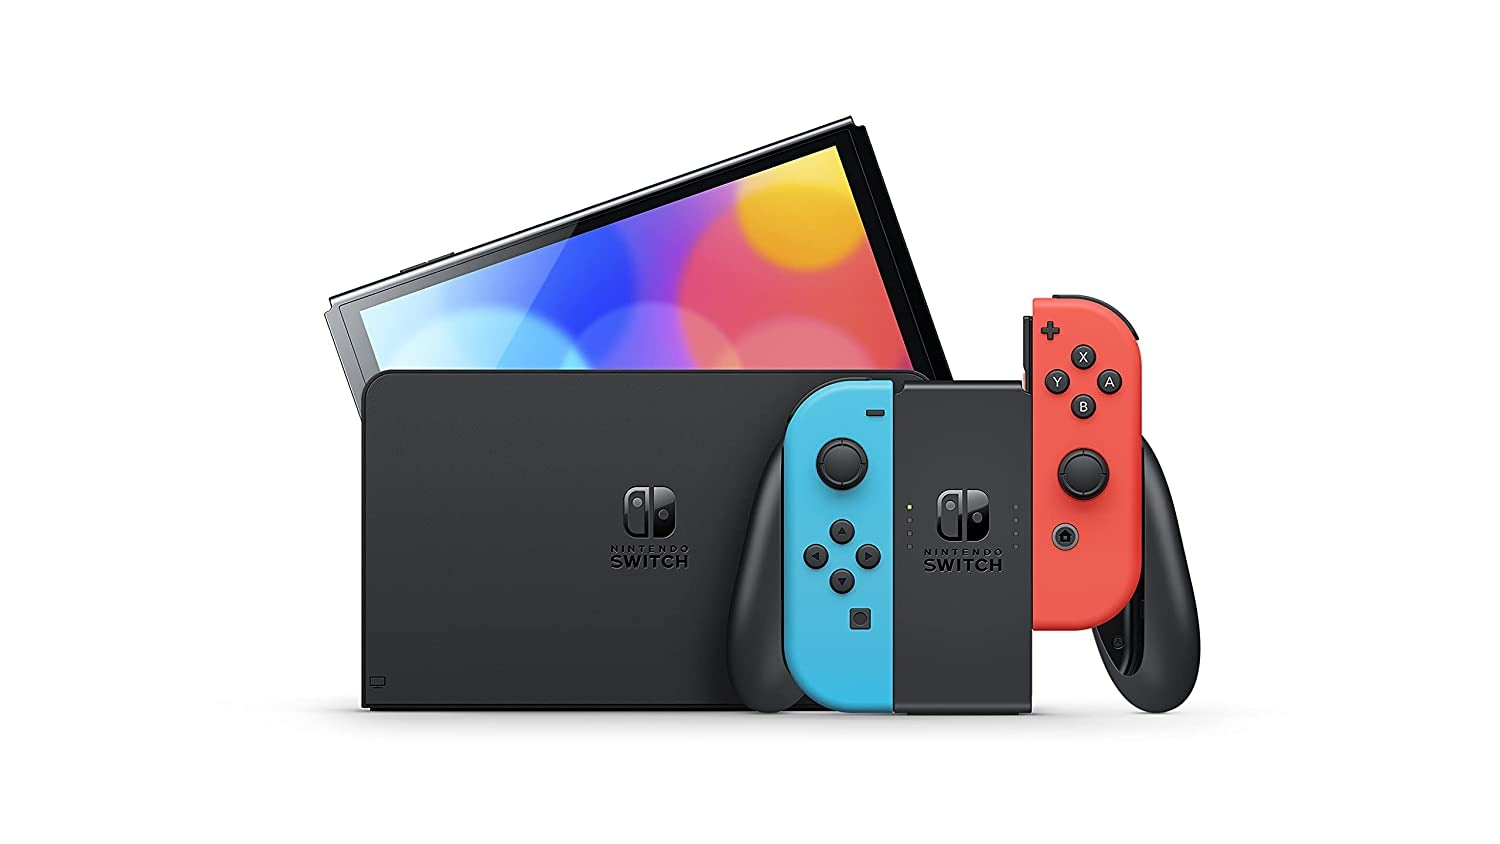 Nintendo Switch OLED Console - Neon Blue/Neon Red - 5